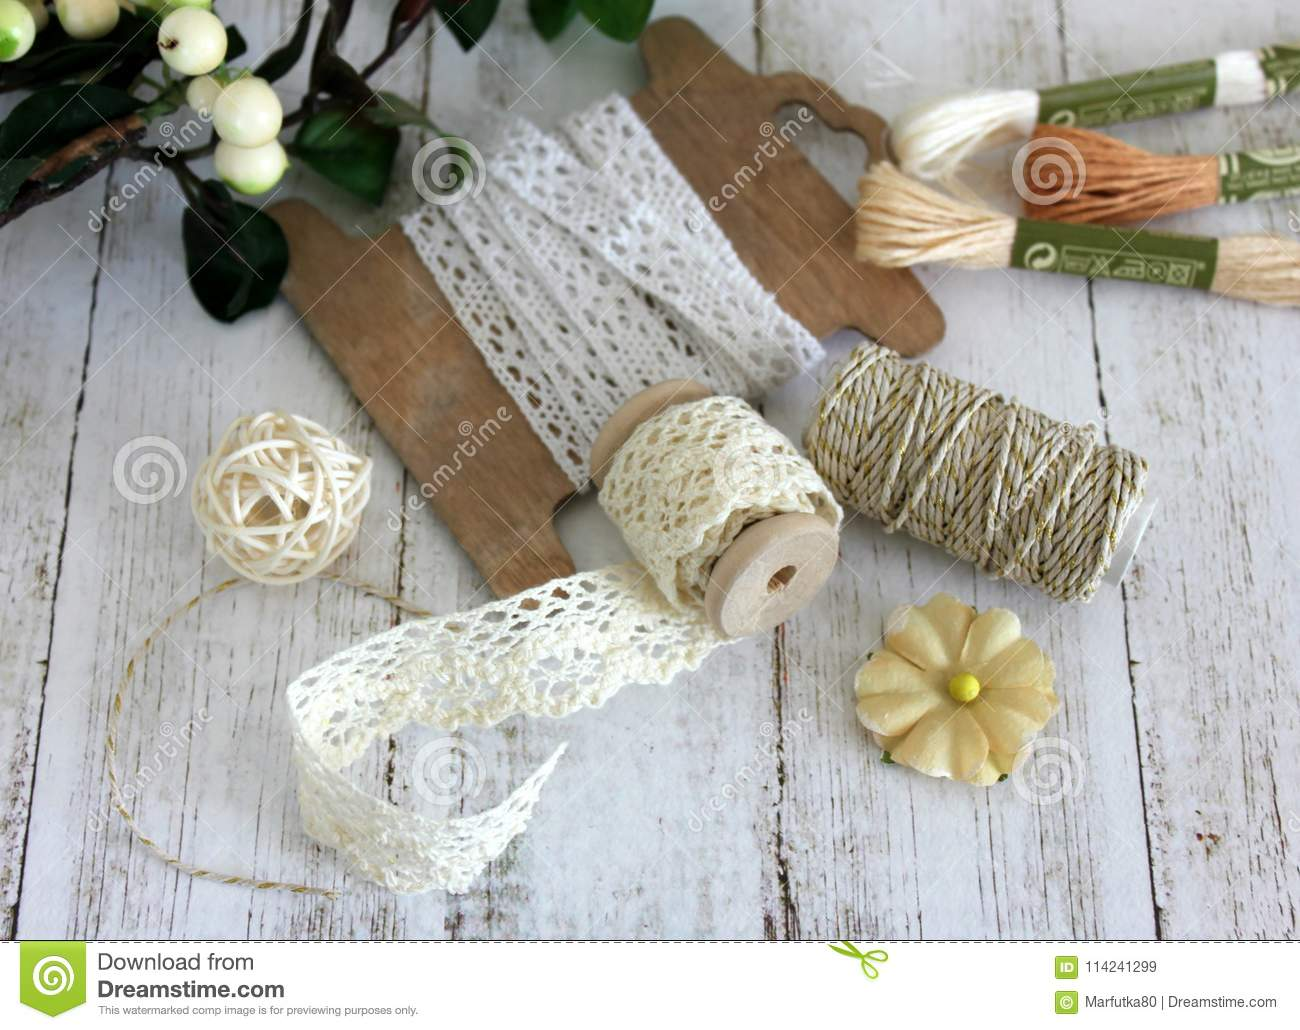 Spools with lace trim and baker`s twine. Laces and trims. Crafting and sewing supplies